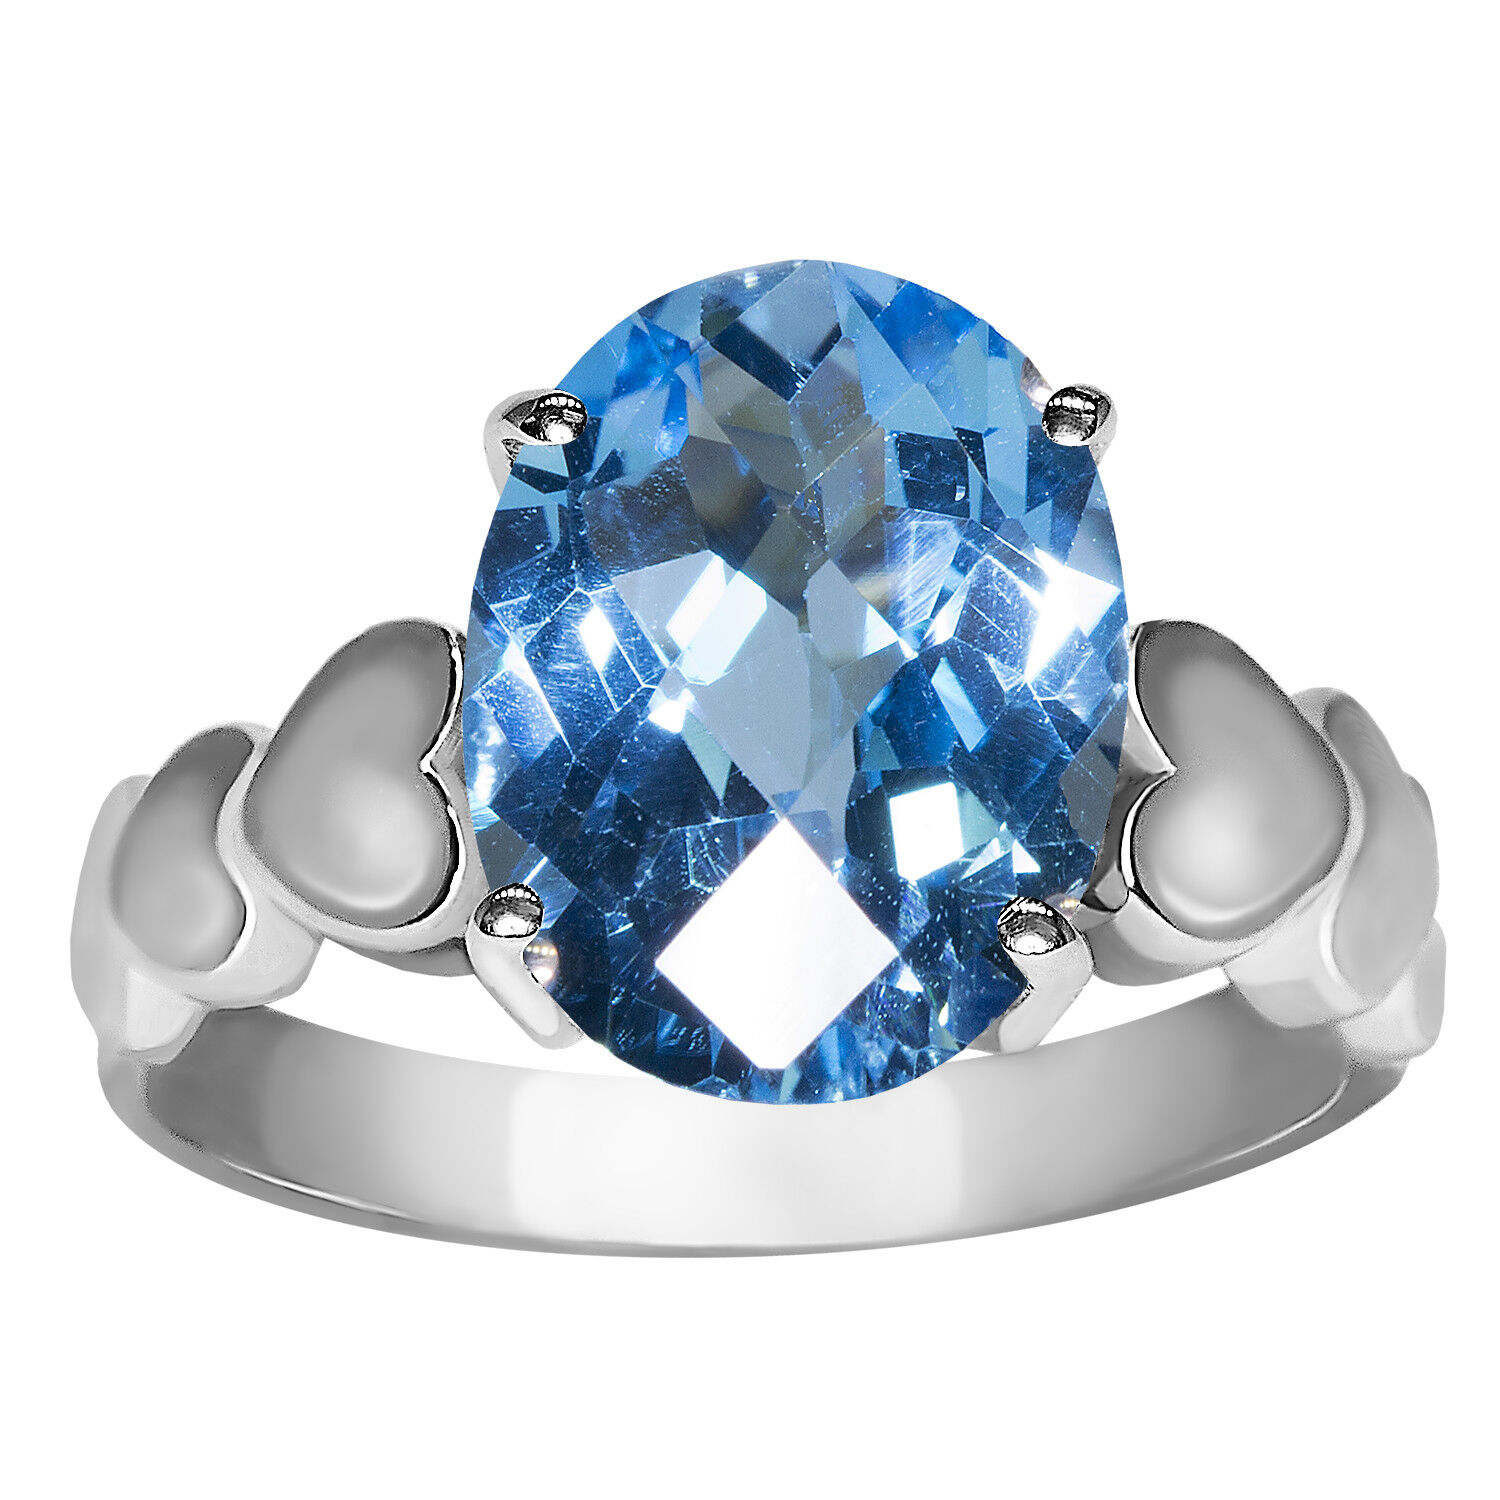 Beautiful bluee Topaz with Heart Designed Shank Fashion Ring in 10k White gold